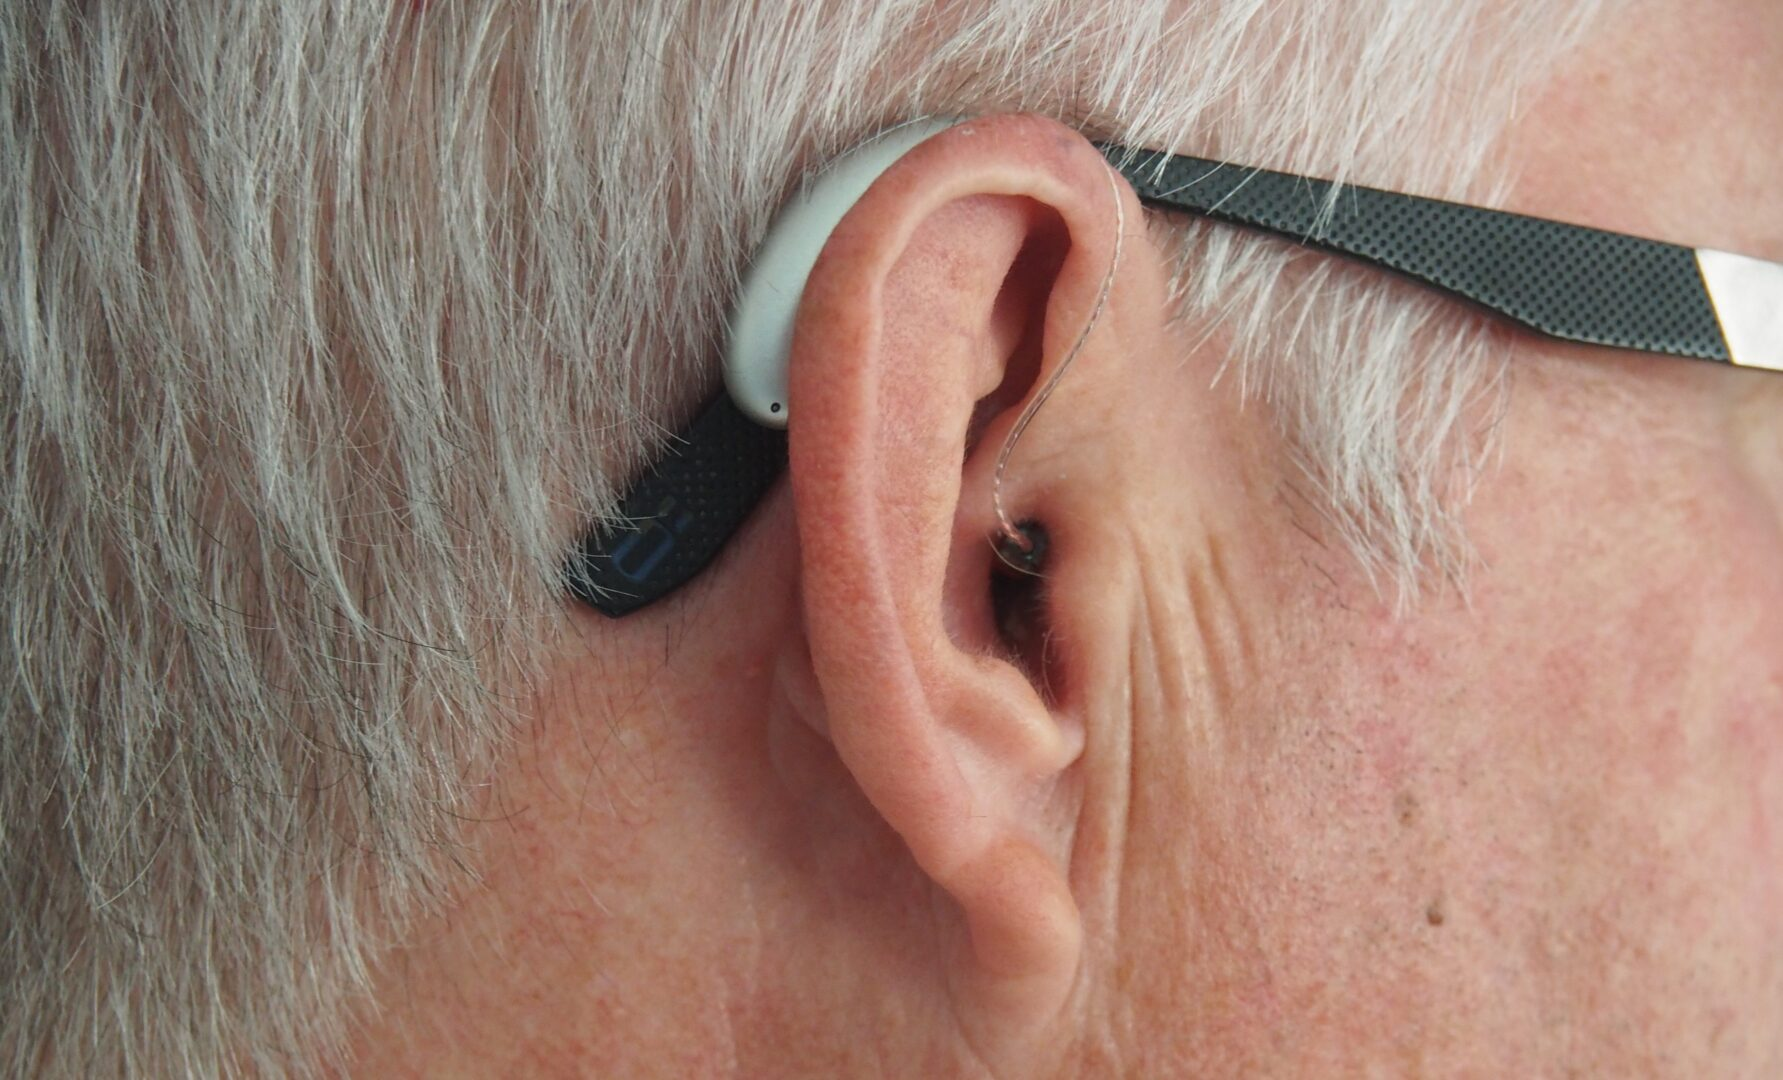 Photo of hearing aid on man's ear